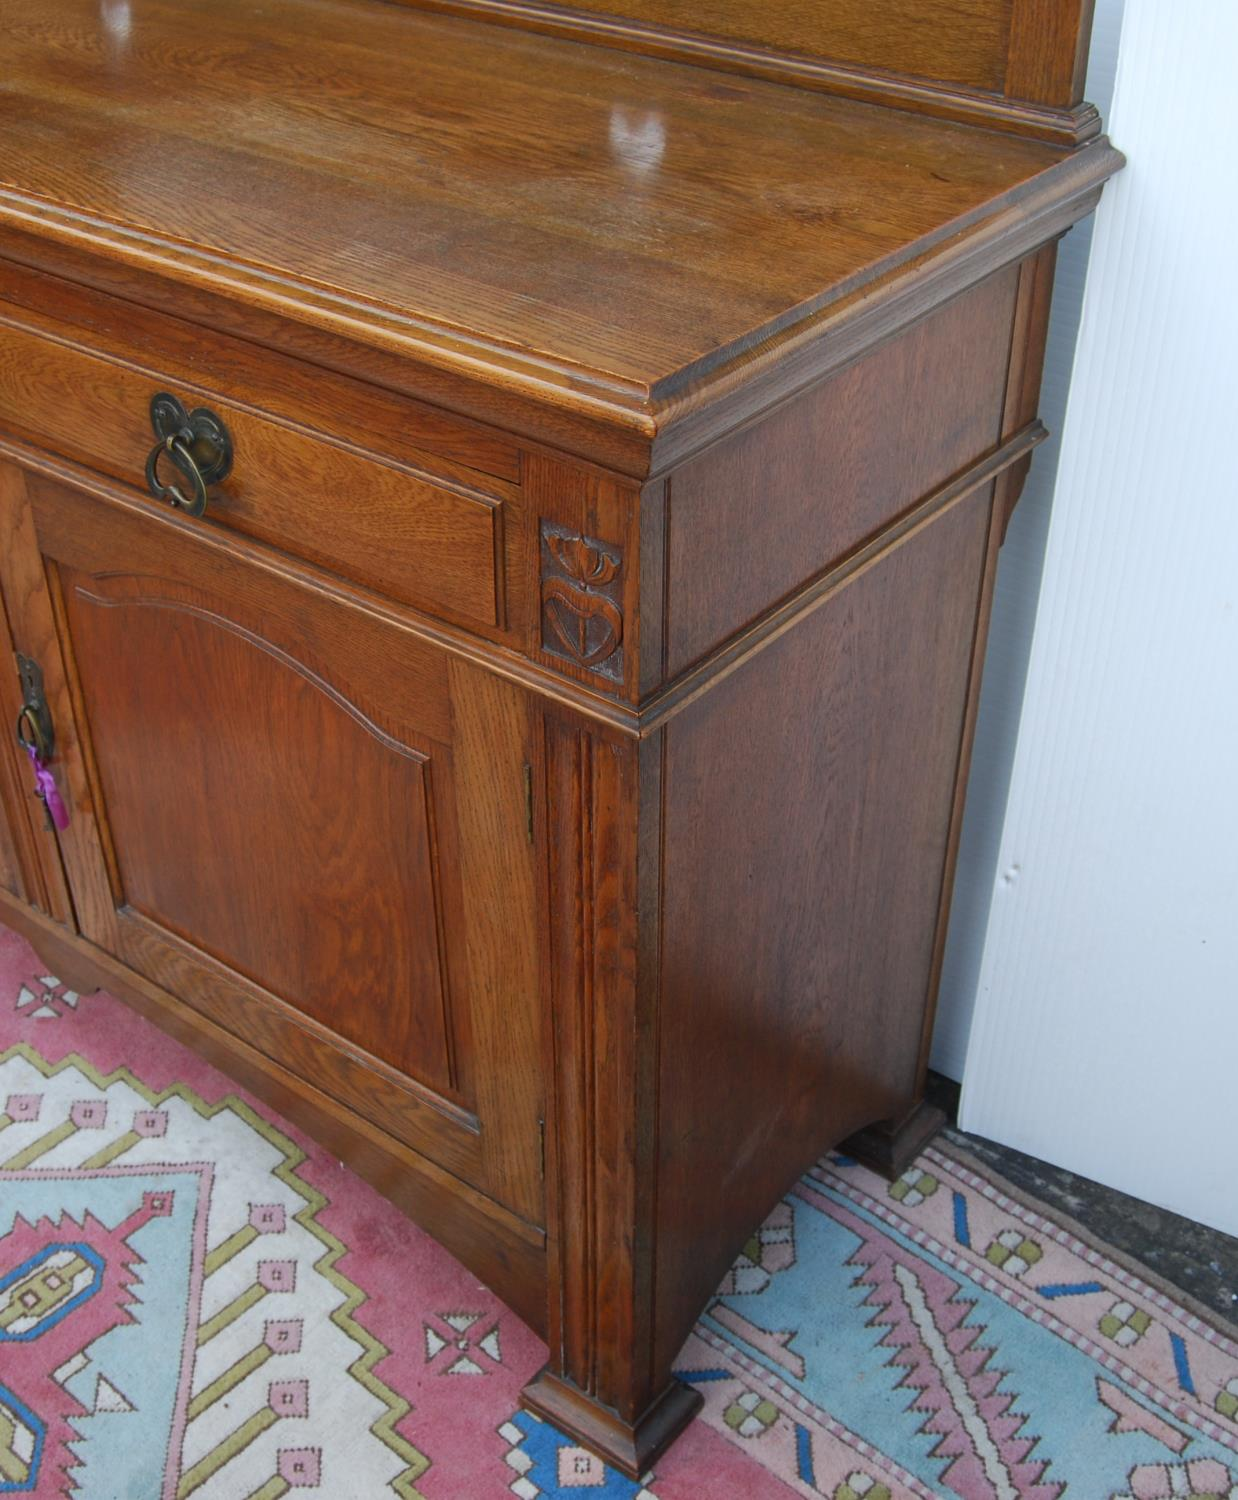 Aesthetic oak sideboard, the back panel with pierced inverted hearts, moulded rectangular top over - Image 6 of 7